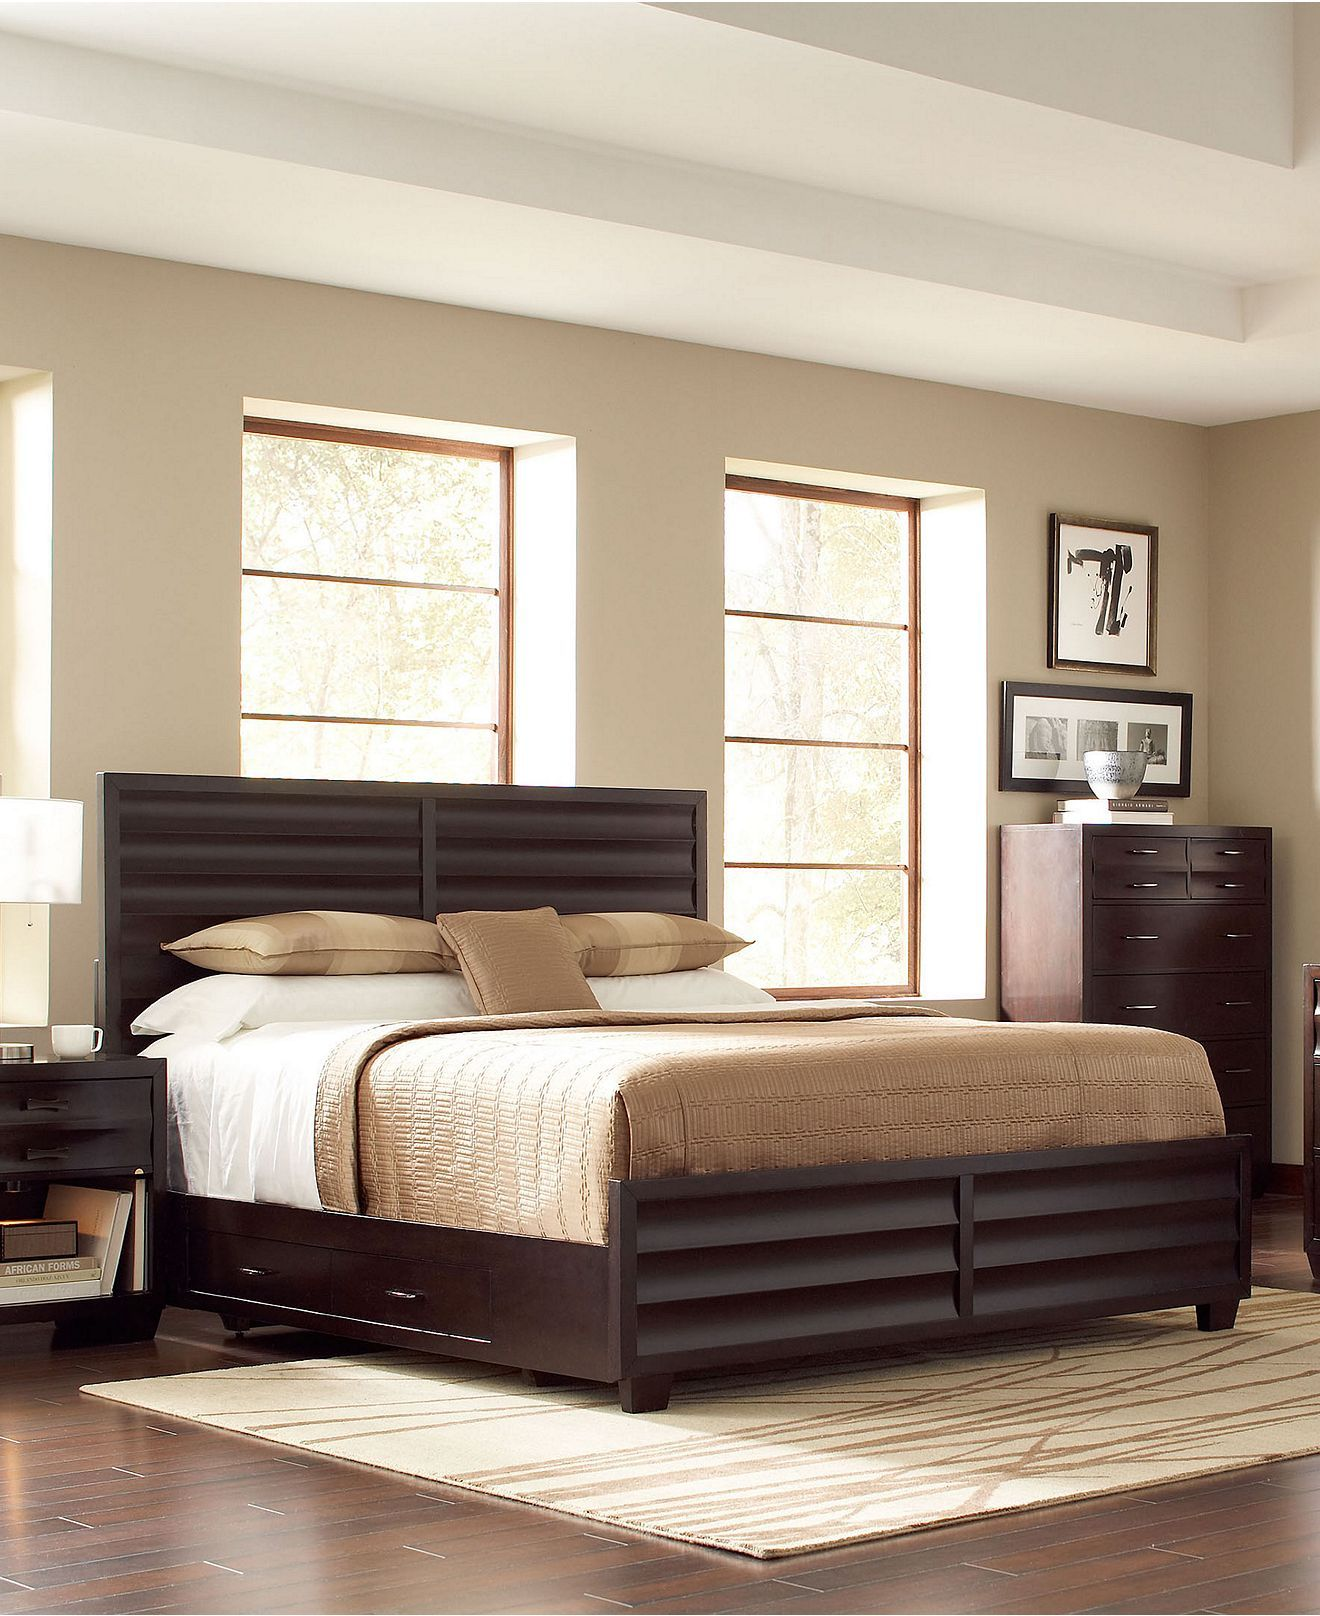 Concorde Bedroom Furniture Collection & Reviews